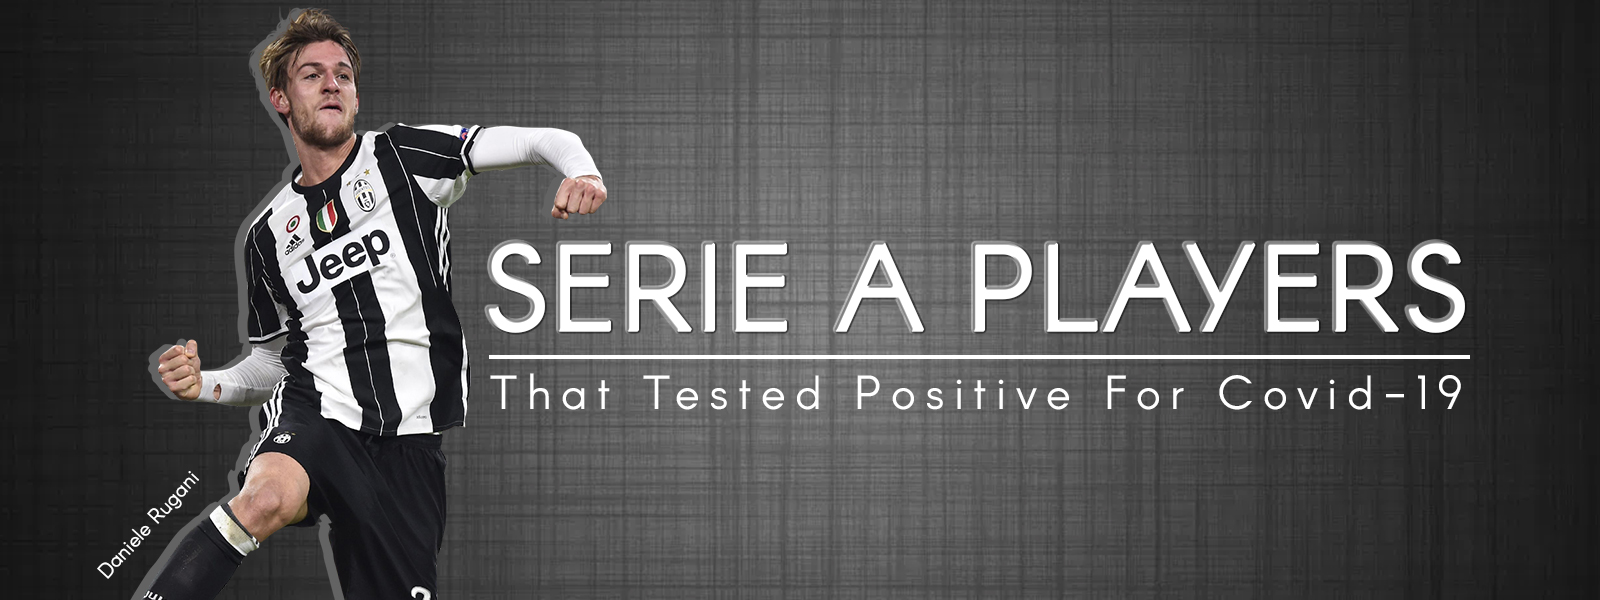 Serie A Players That Tested Positive For Covid-19